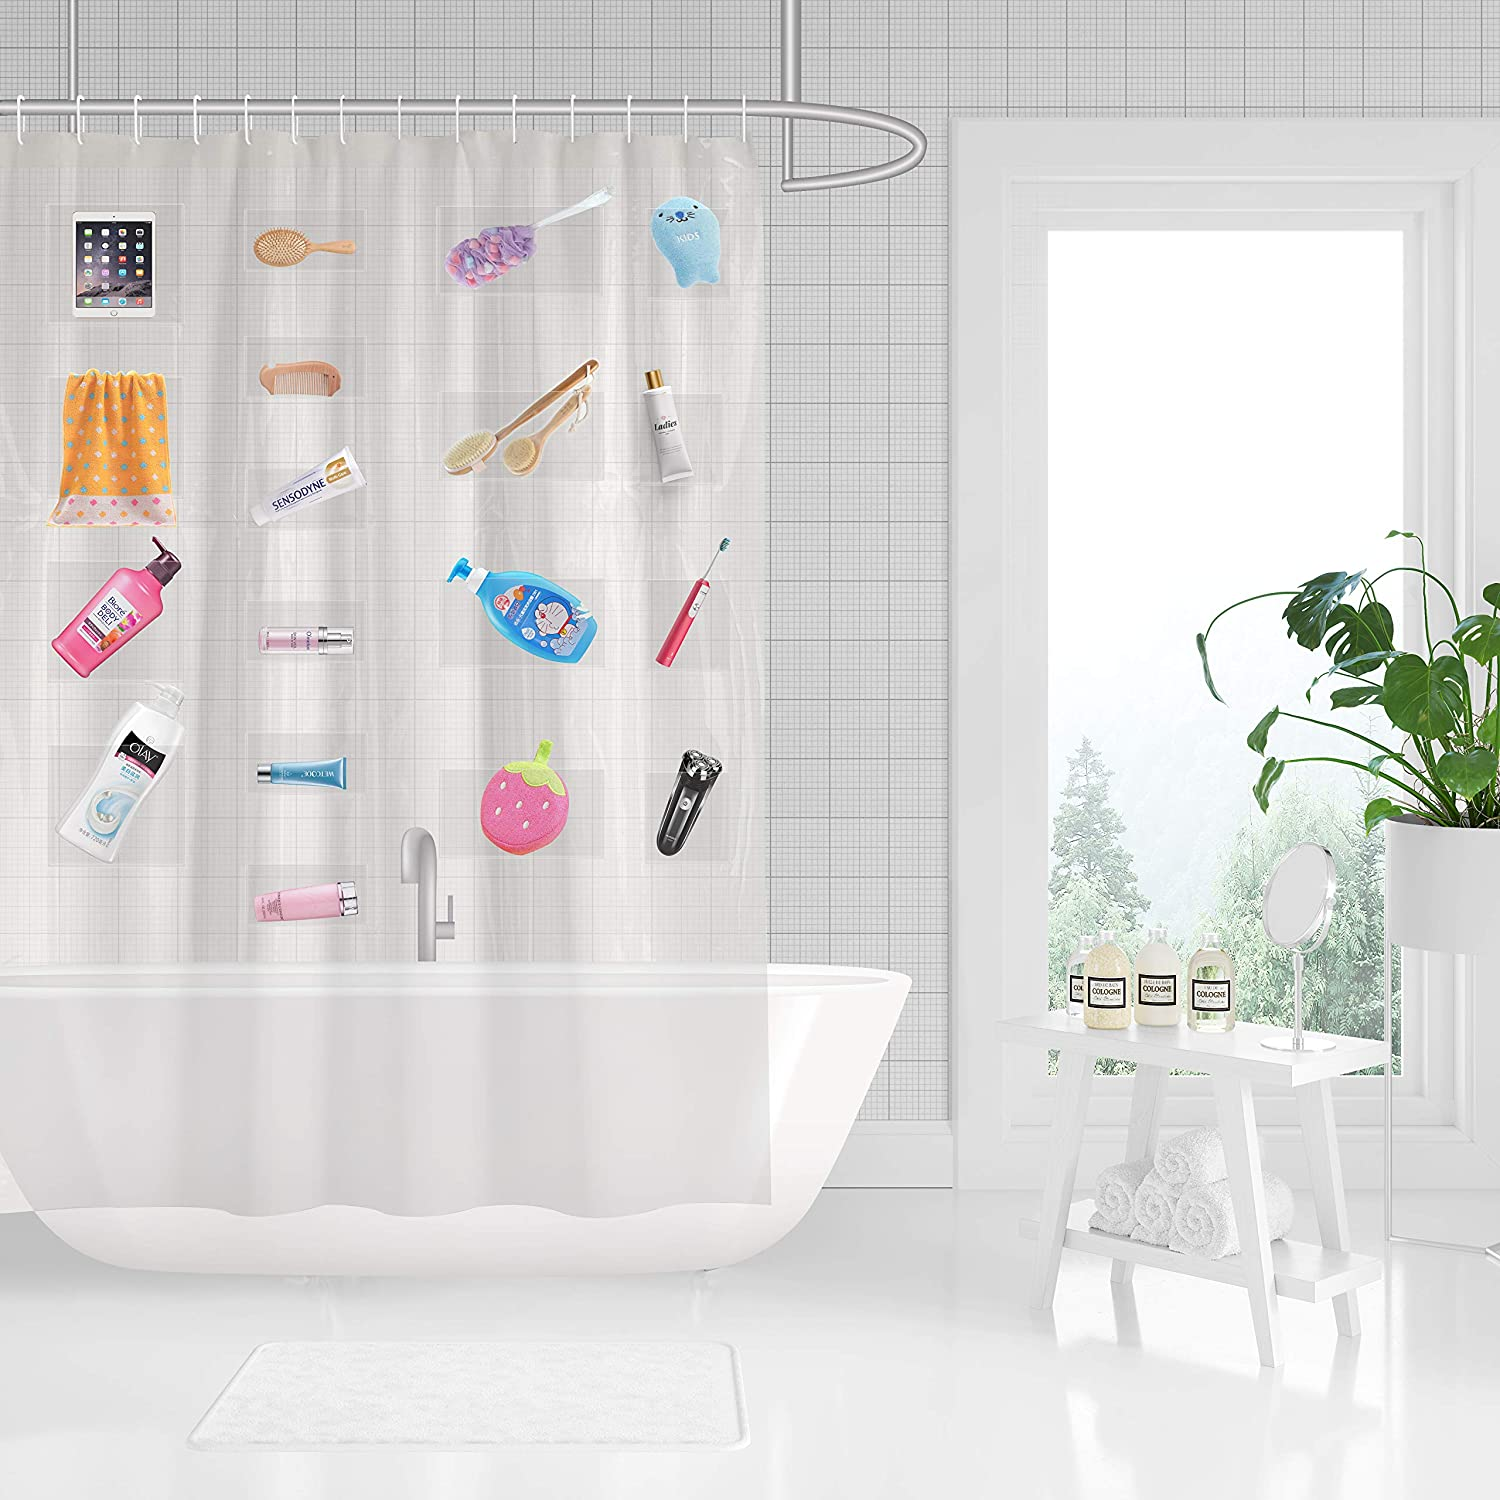 183 x 183 cm Anjee Shower Curtain with Hooks for Bathroom Sustainable Striped Bath Curtain Waterproof Mould Mildew Resistant